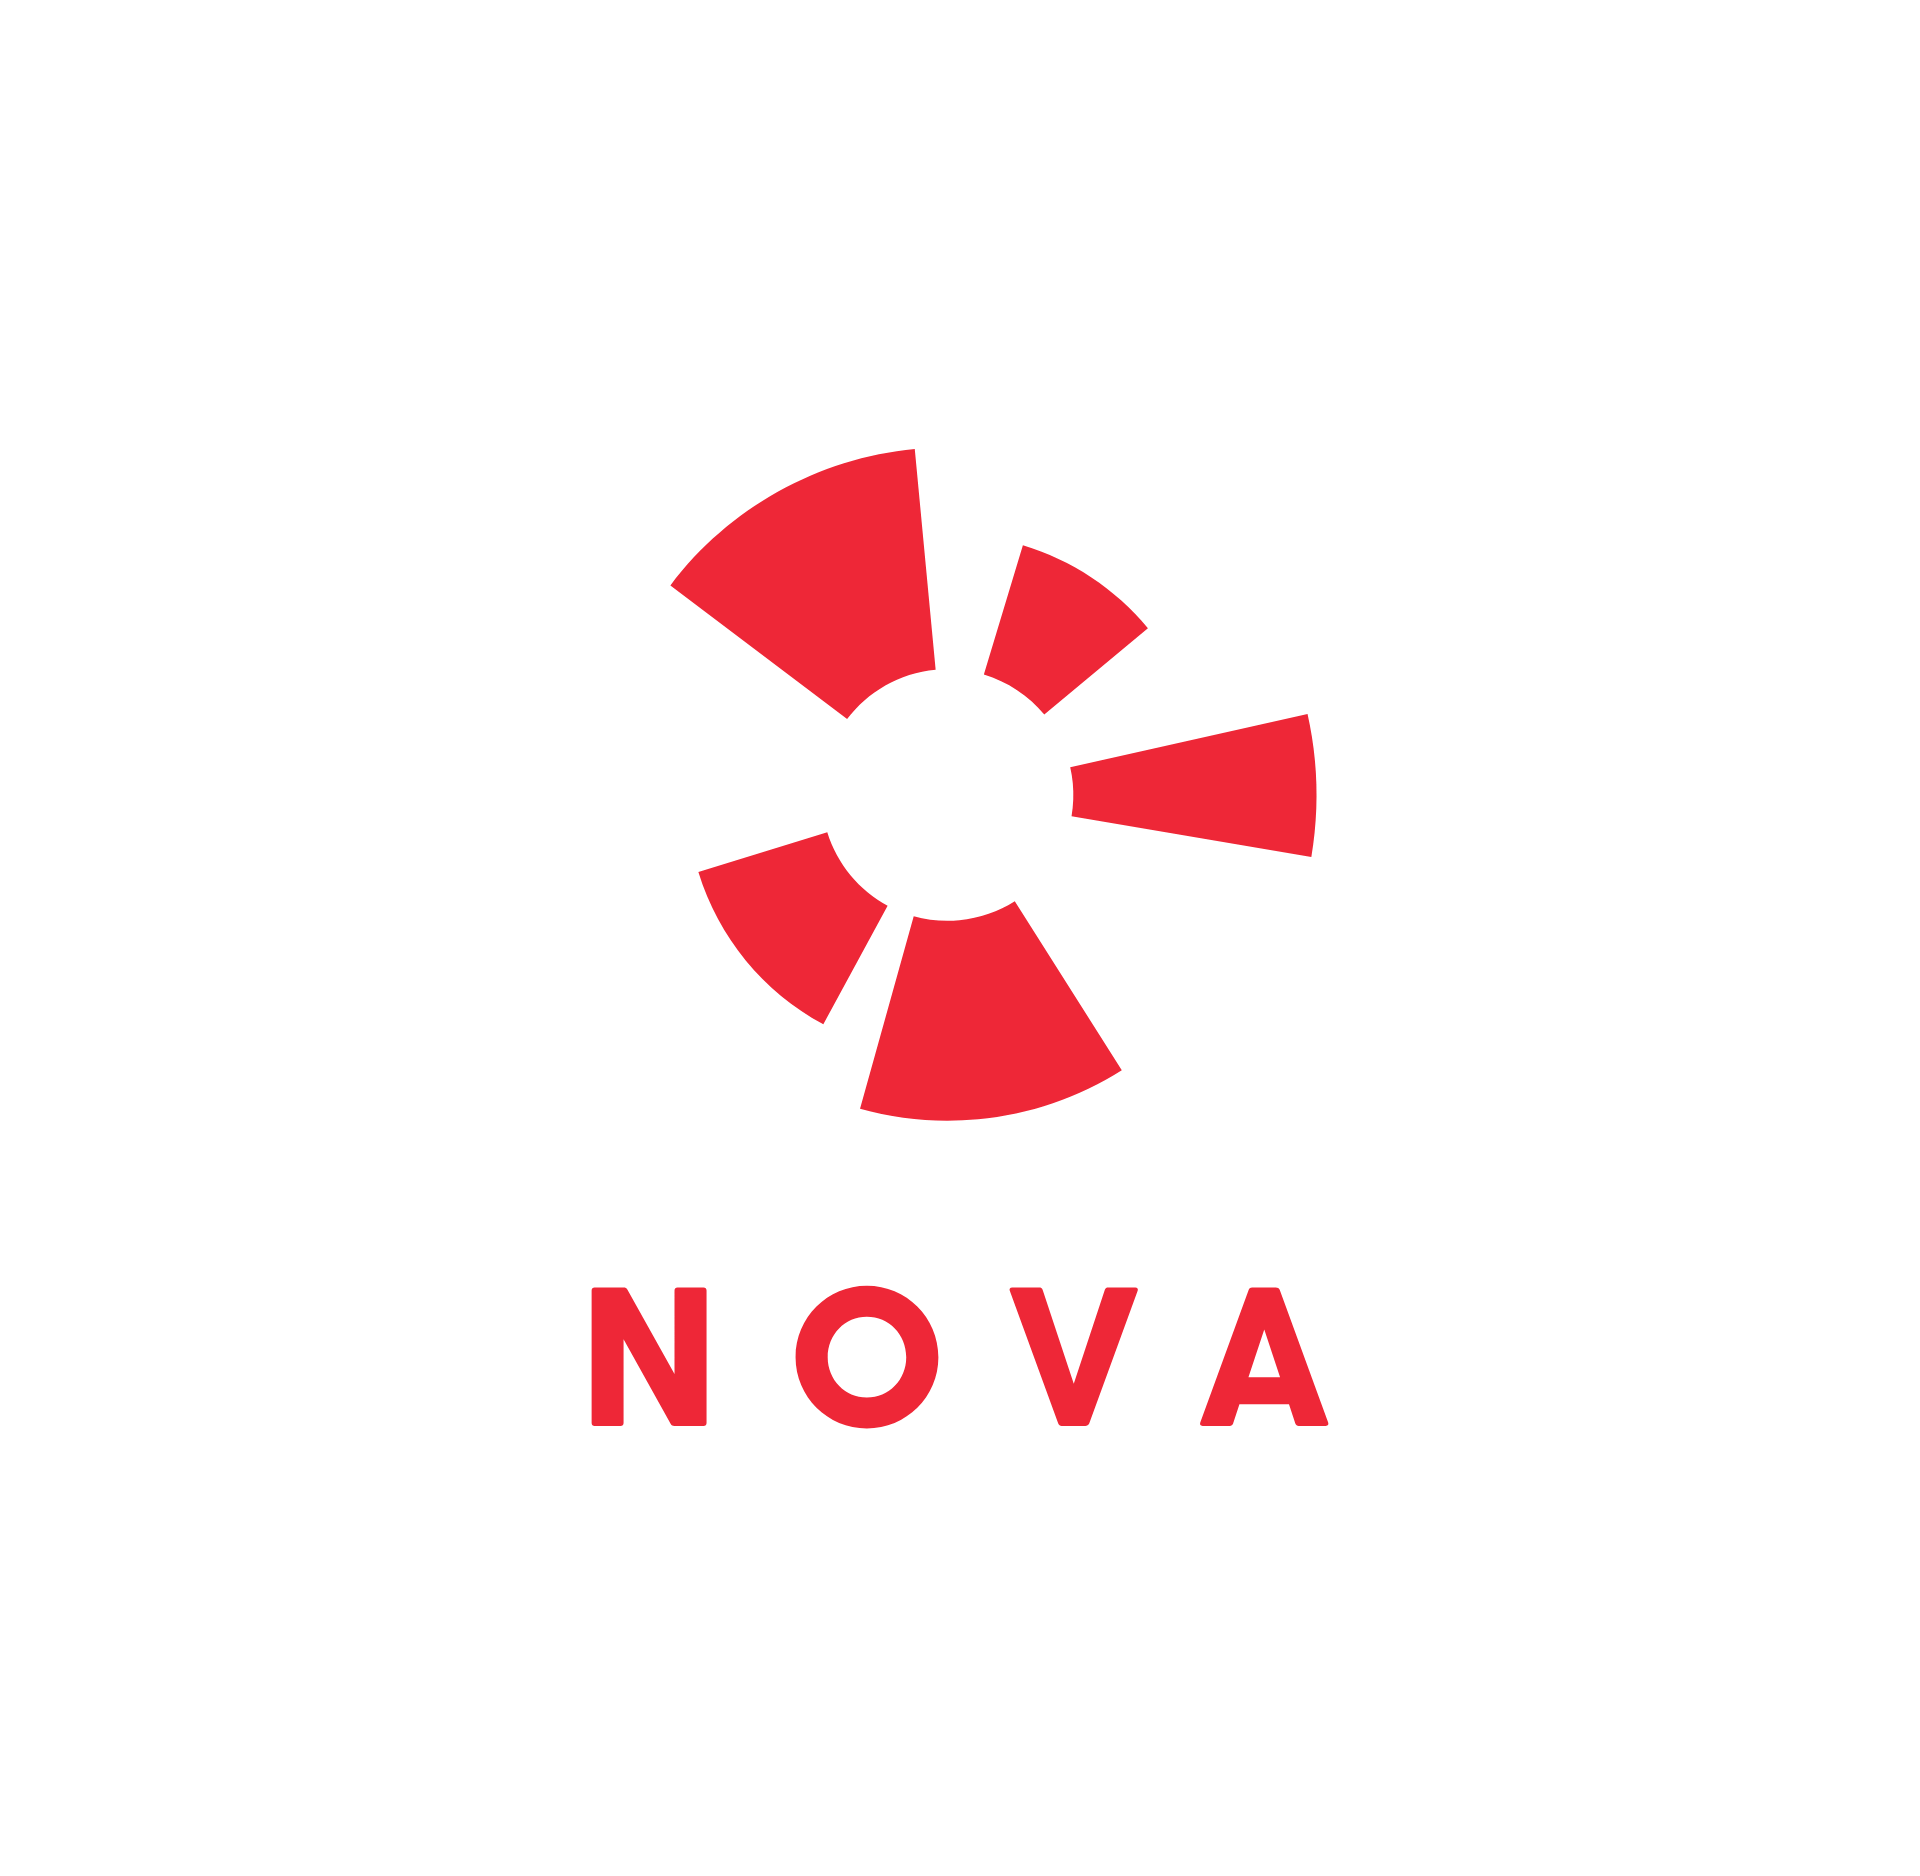 Nova logo in red on white, the text NOVA is set in a modern clean sans serif typeface with a symbol of a star burst above it made up of the shapes from open skydiving parachutes and also subtly forms the shape of a human.